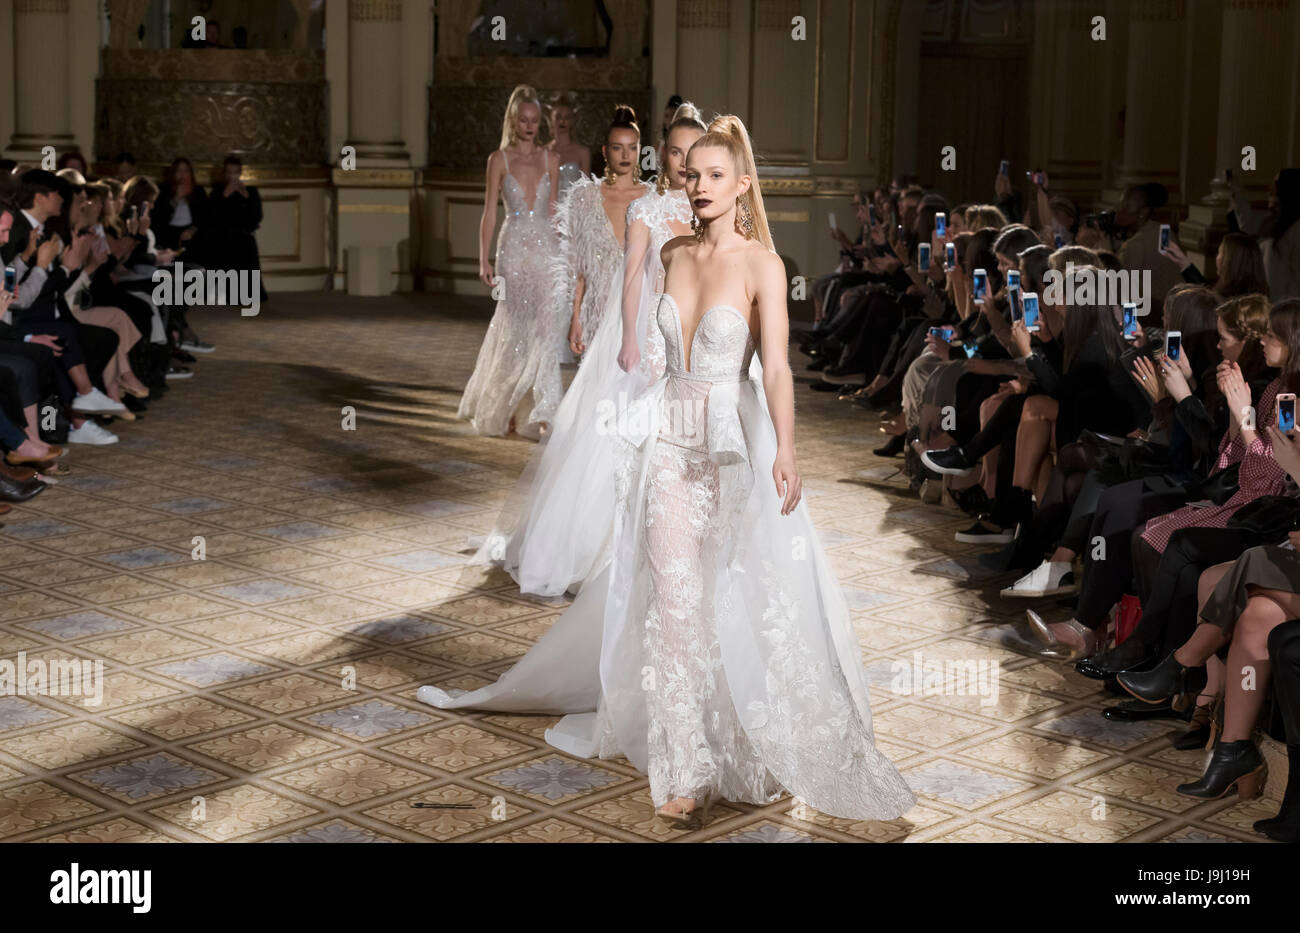 60be1d813 NEW YORK, NY - April 21, 2017: Models walk the runway at the Berta Bridal  Spring 2018 Collection Runway Show during NY Fashion Week Bridal